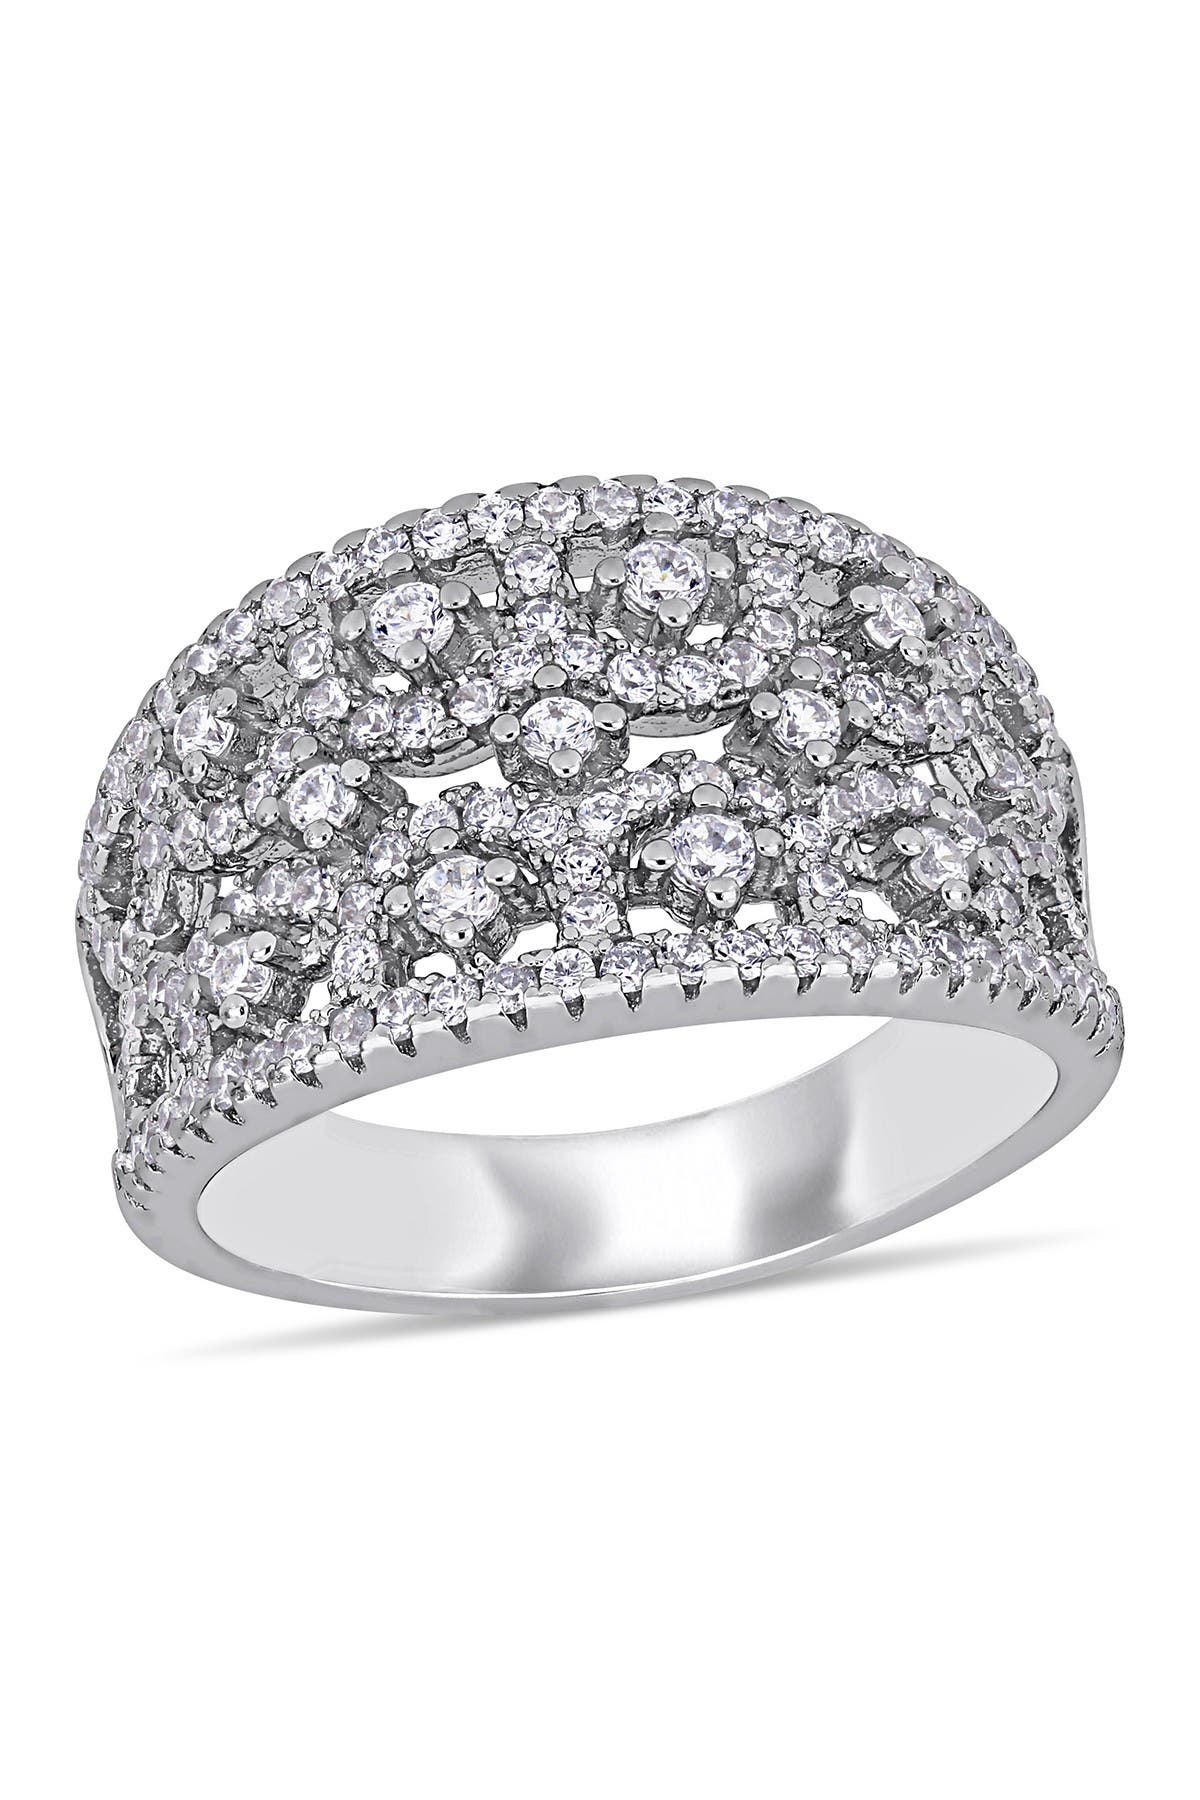 Image of Delmar Sterling Silver Pave CZ Filigree Band Ring